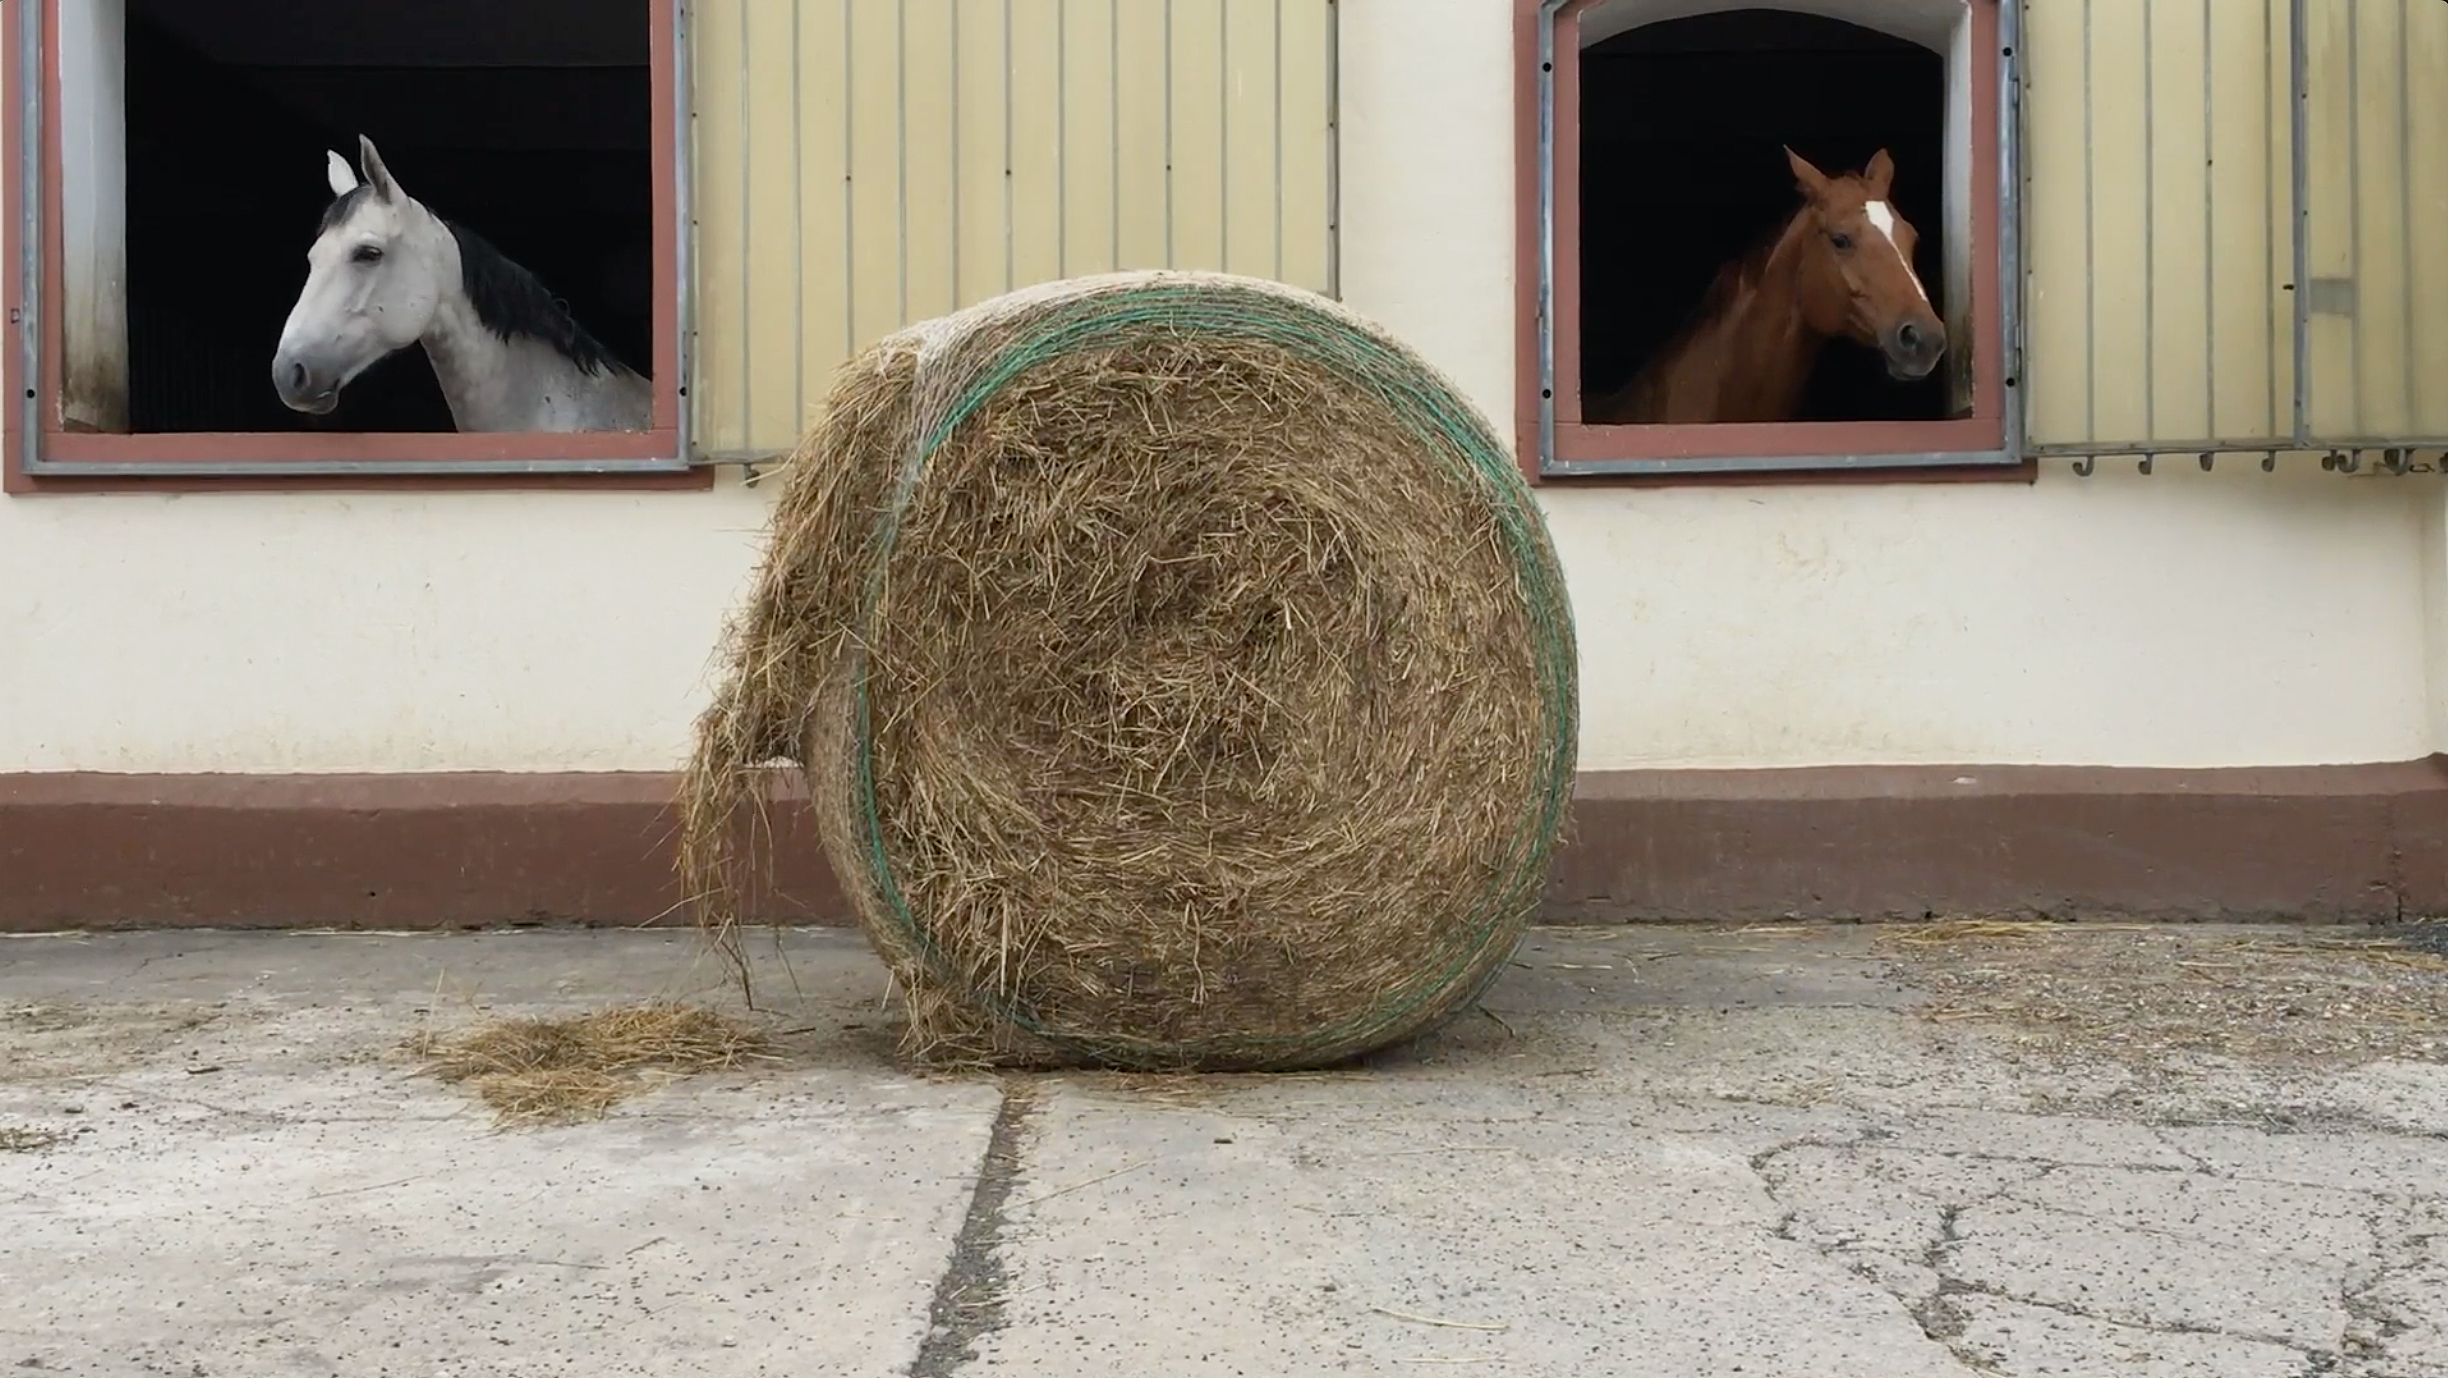 Two horses in a barn with a bale of hay